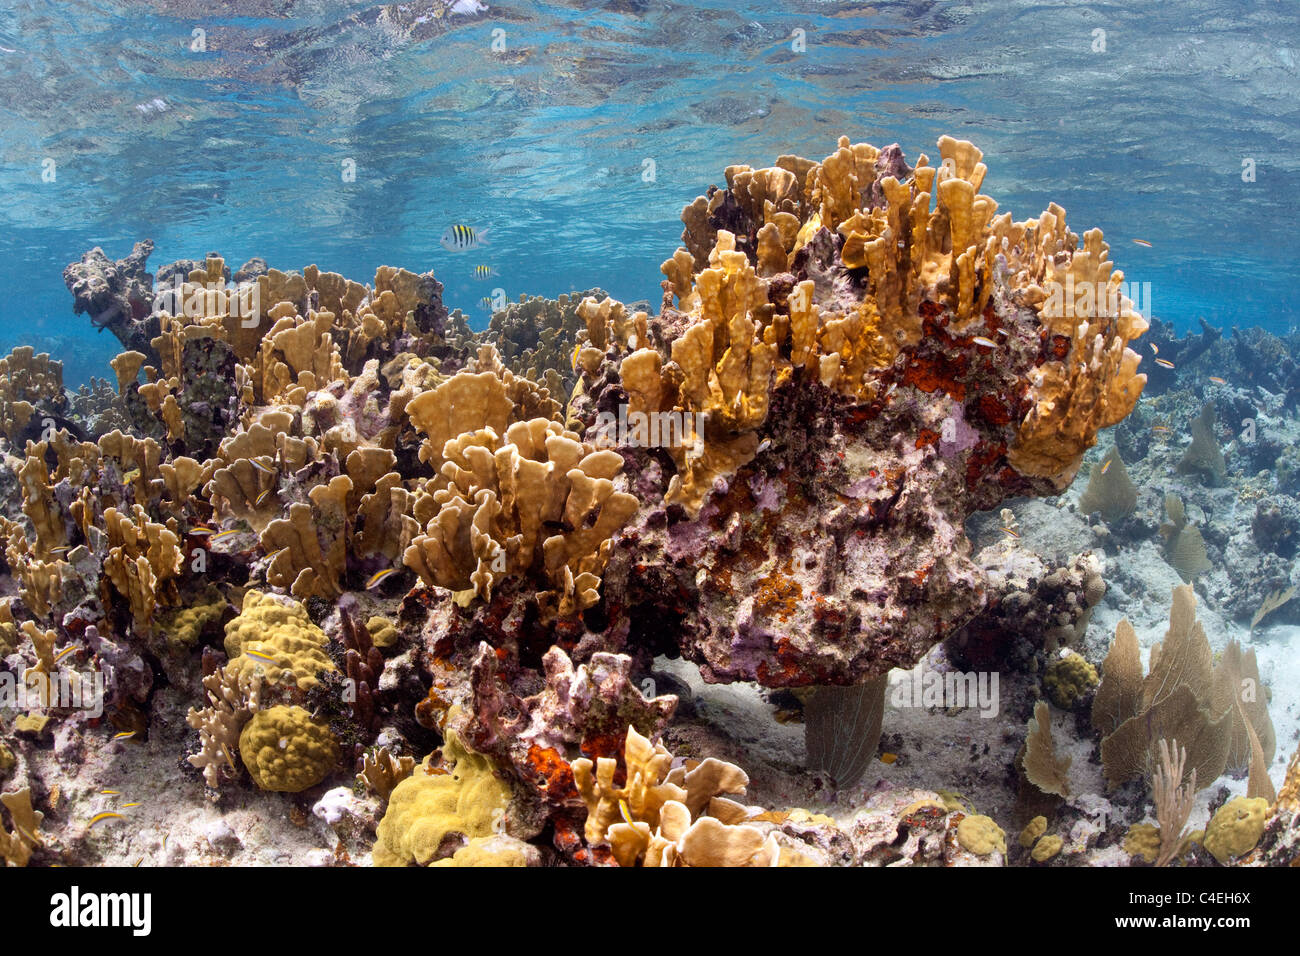 A large stand of Fire Coral at Jardines de la Reina off the coast of Cuba. - Stock Image